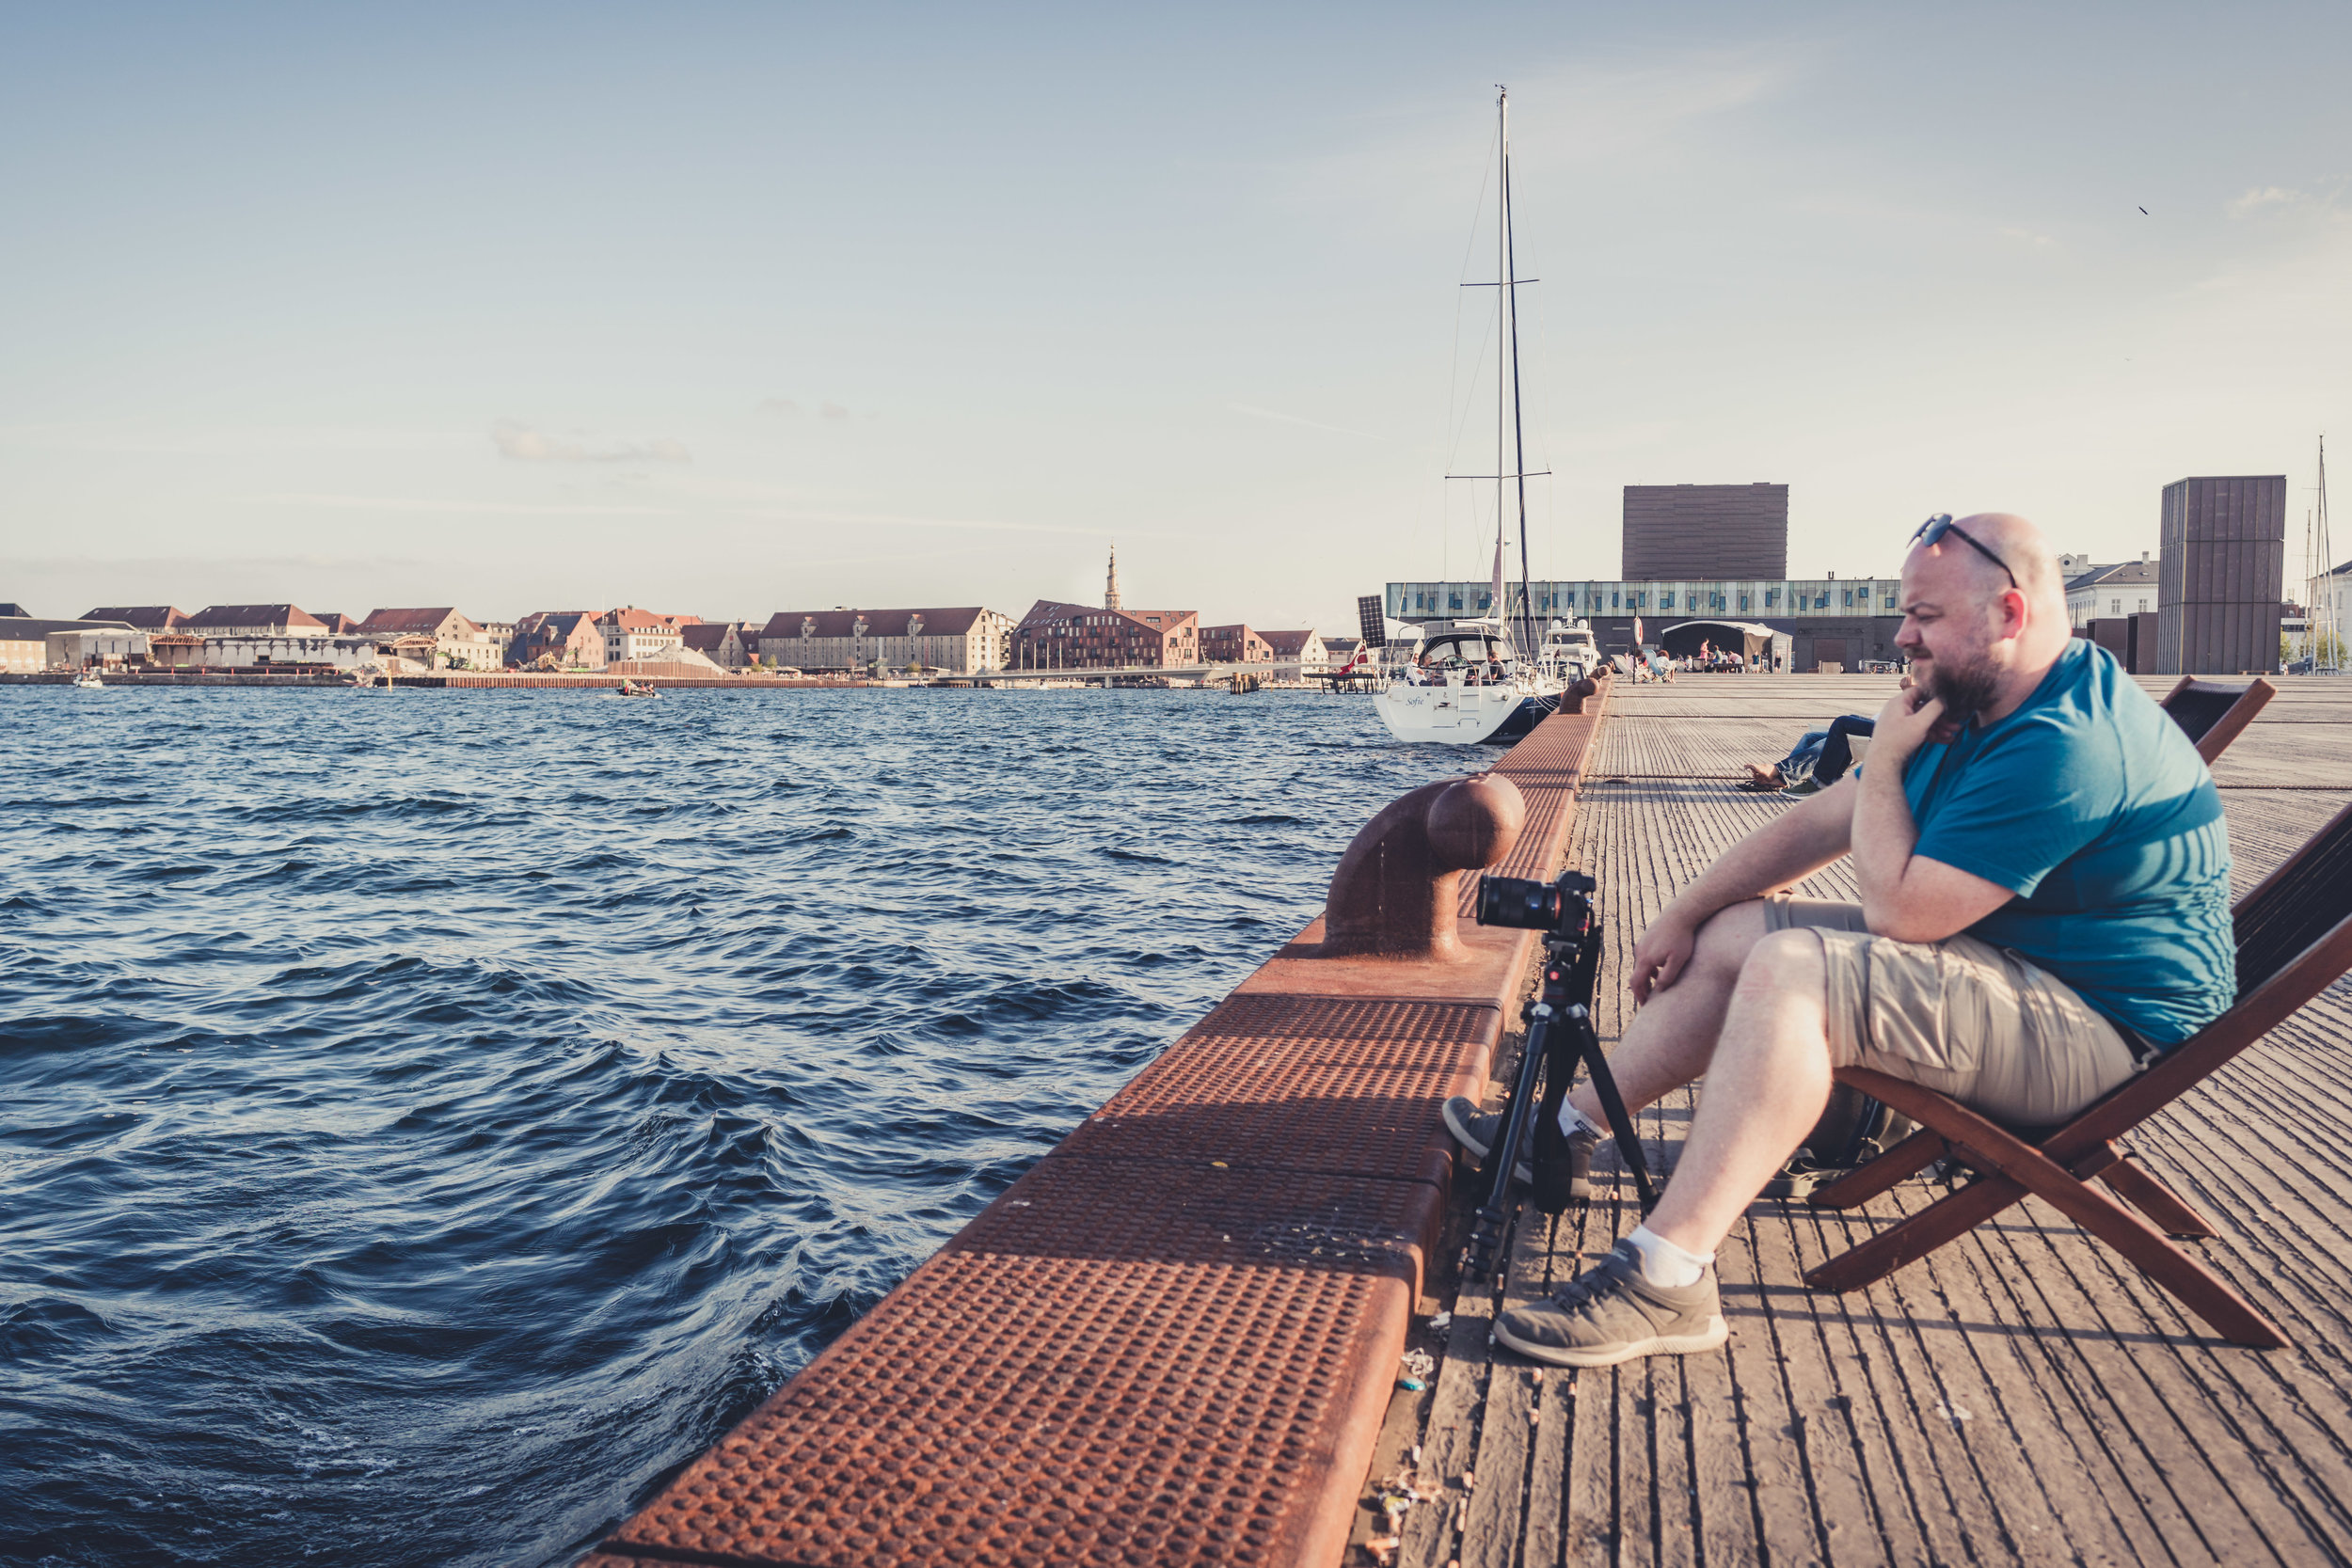 copenhagen. denmark. travel. adventure. europe. scandinavia. history. travelblog. taking a picture of the river. sitting on the docks.jpg